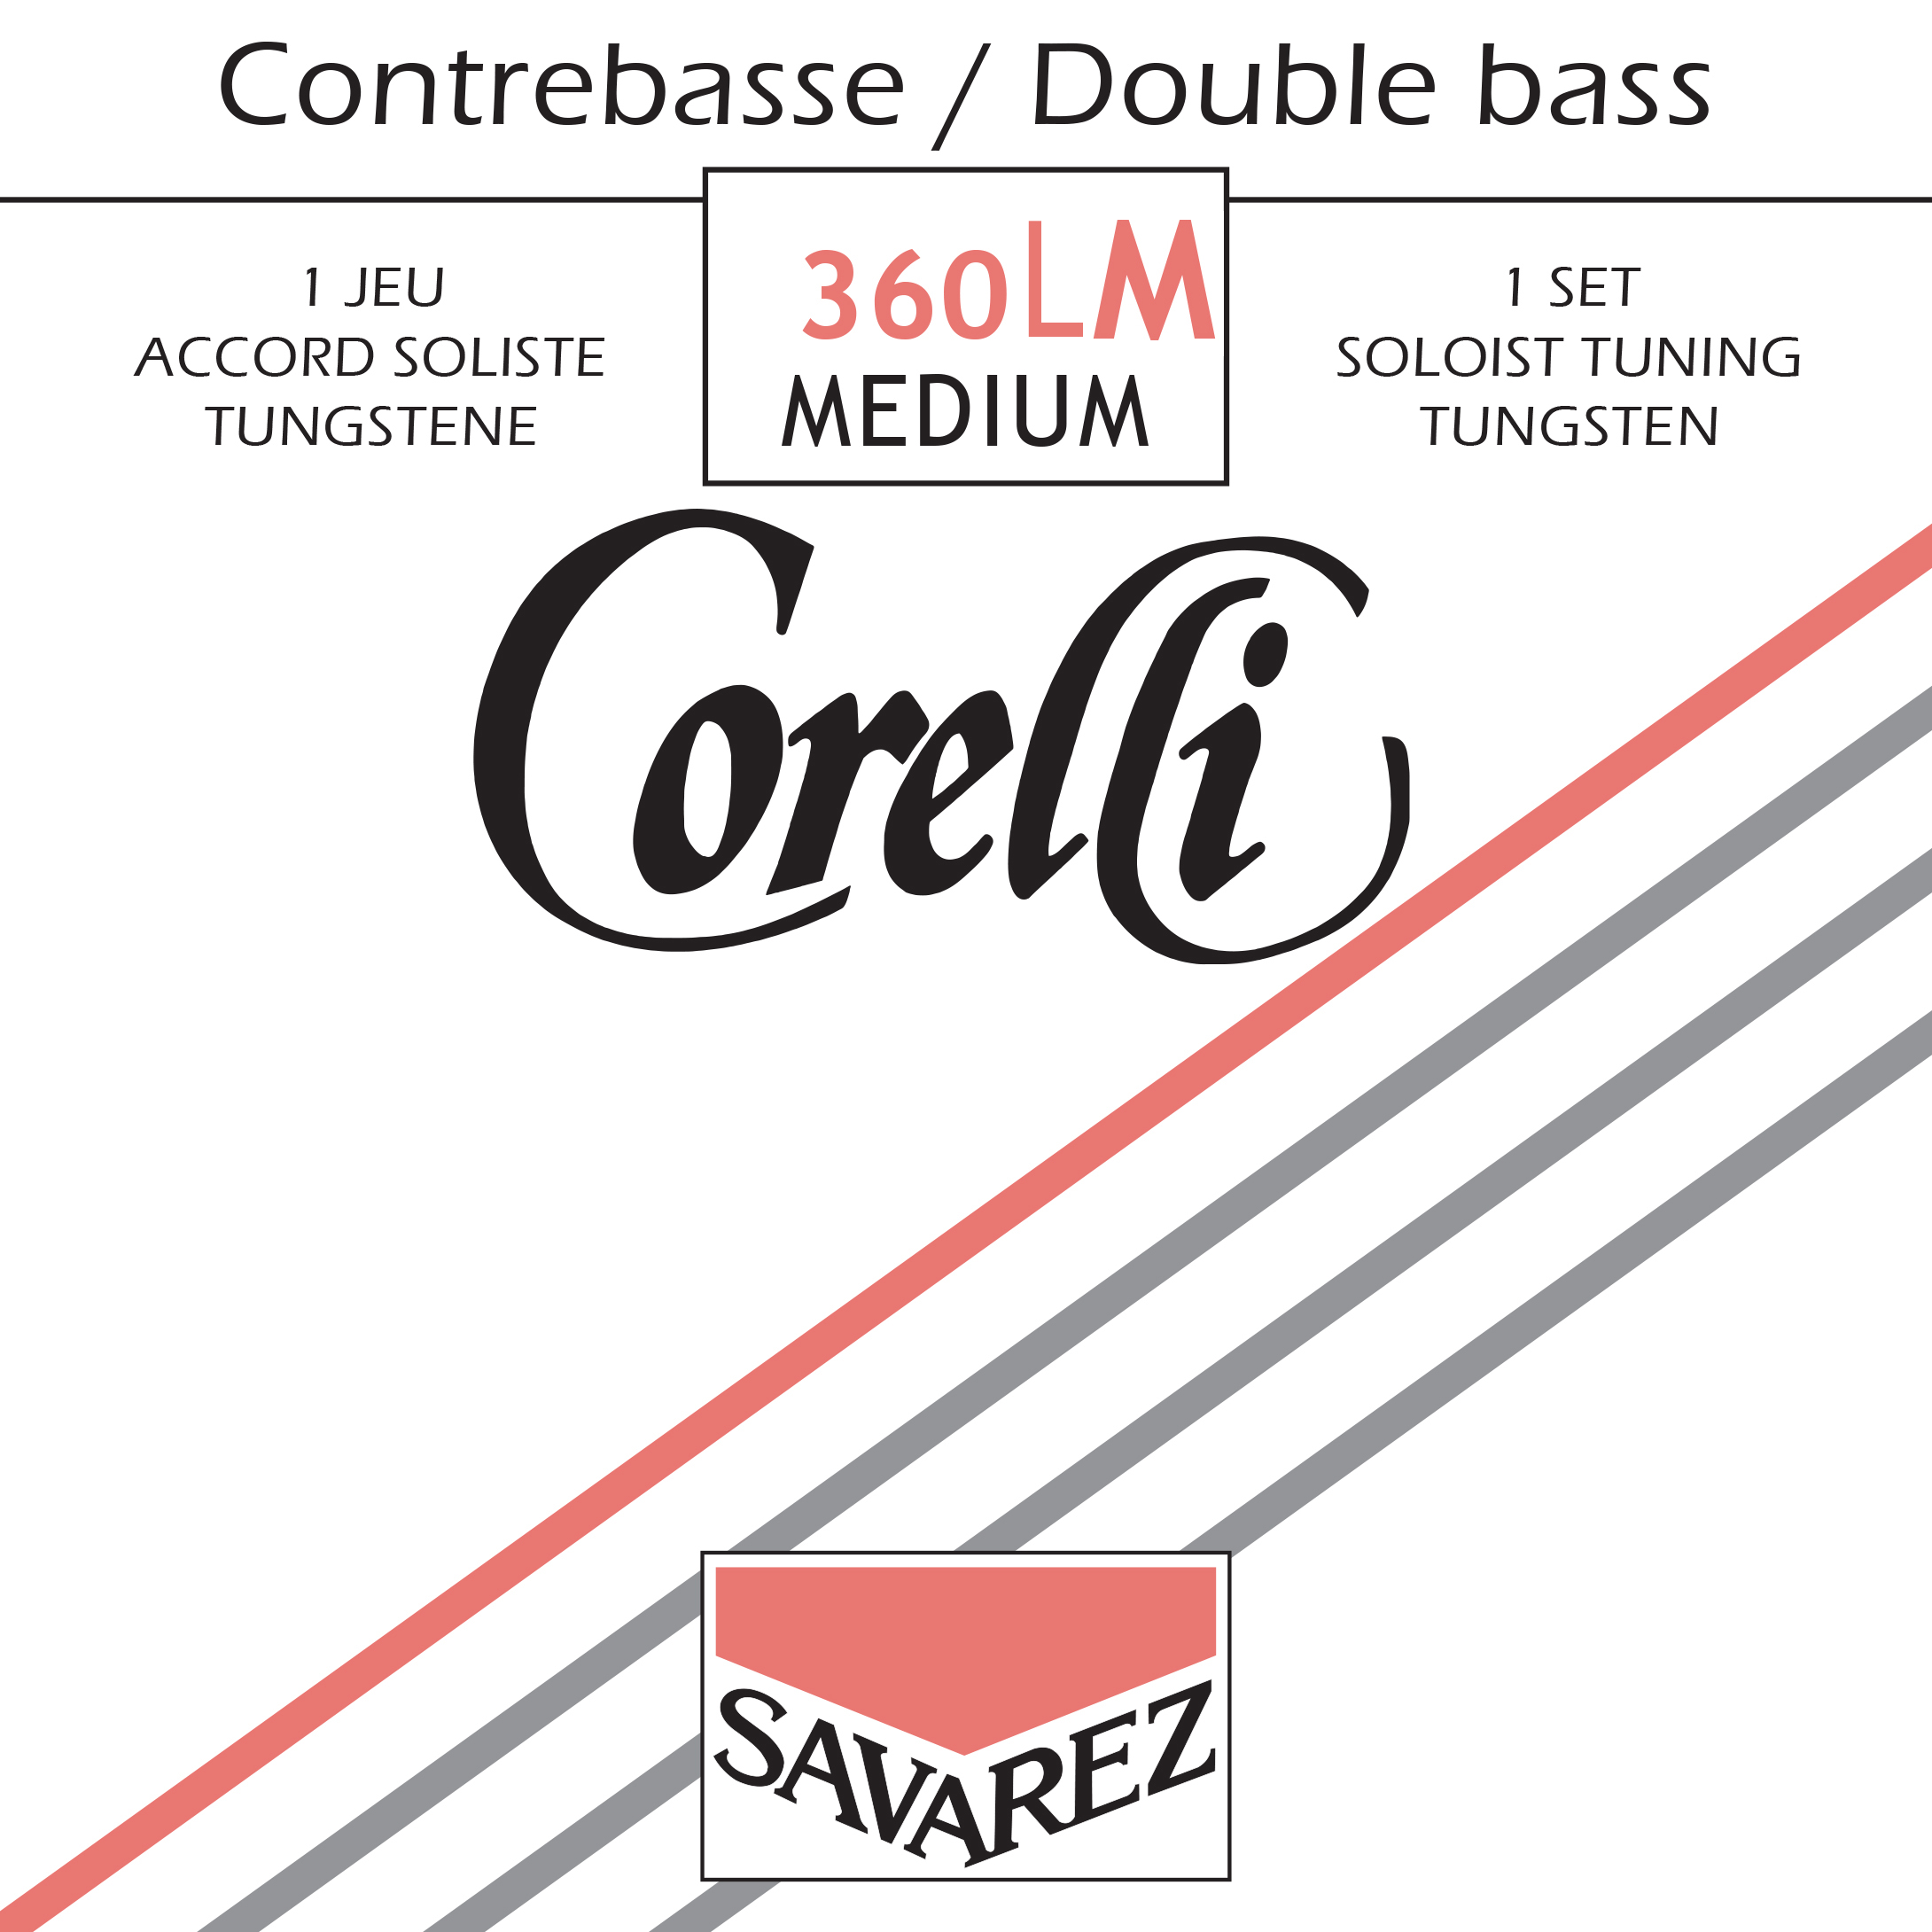 CORELLI MEDIUM TENSION 360LM TUNGSTEN SOLO SET